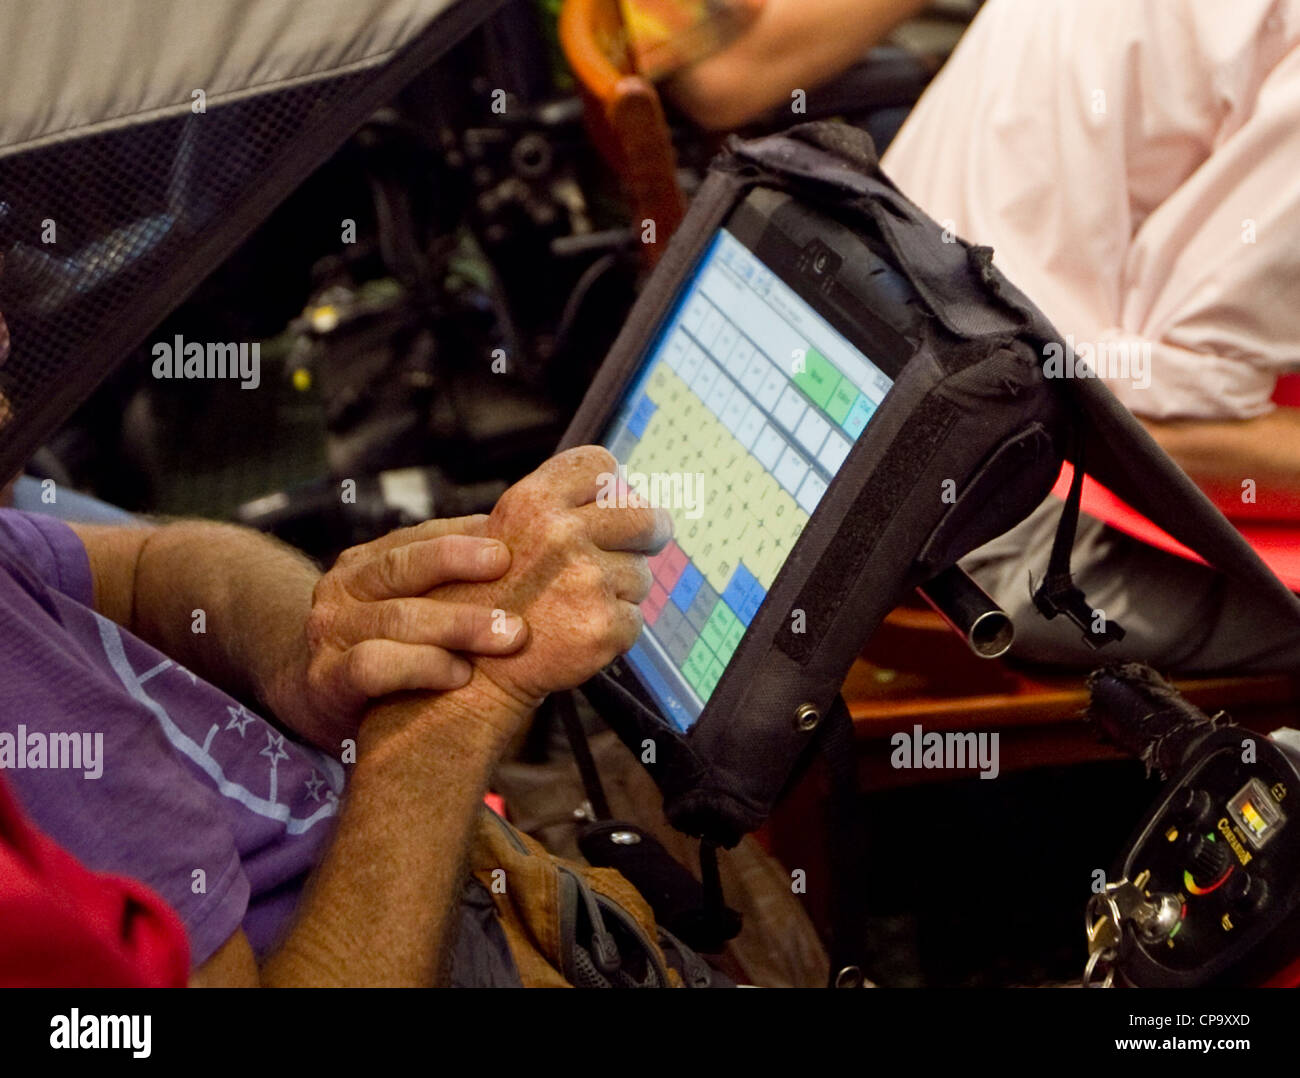 physically disabled man uses touch-screen computer attached to his wheelchair to communicate - Stock Image